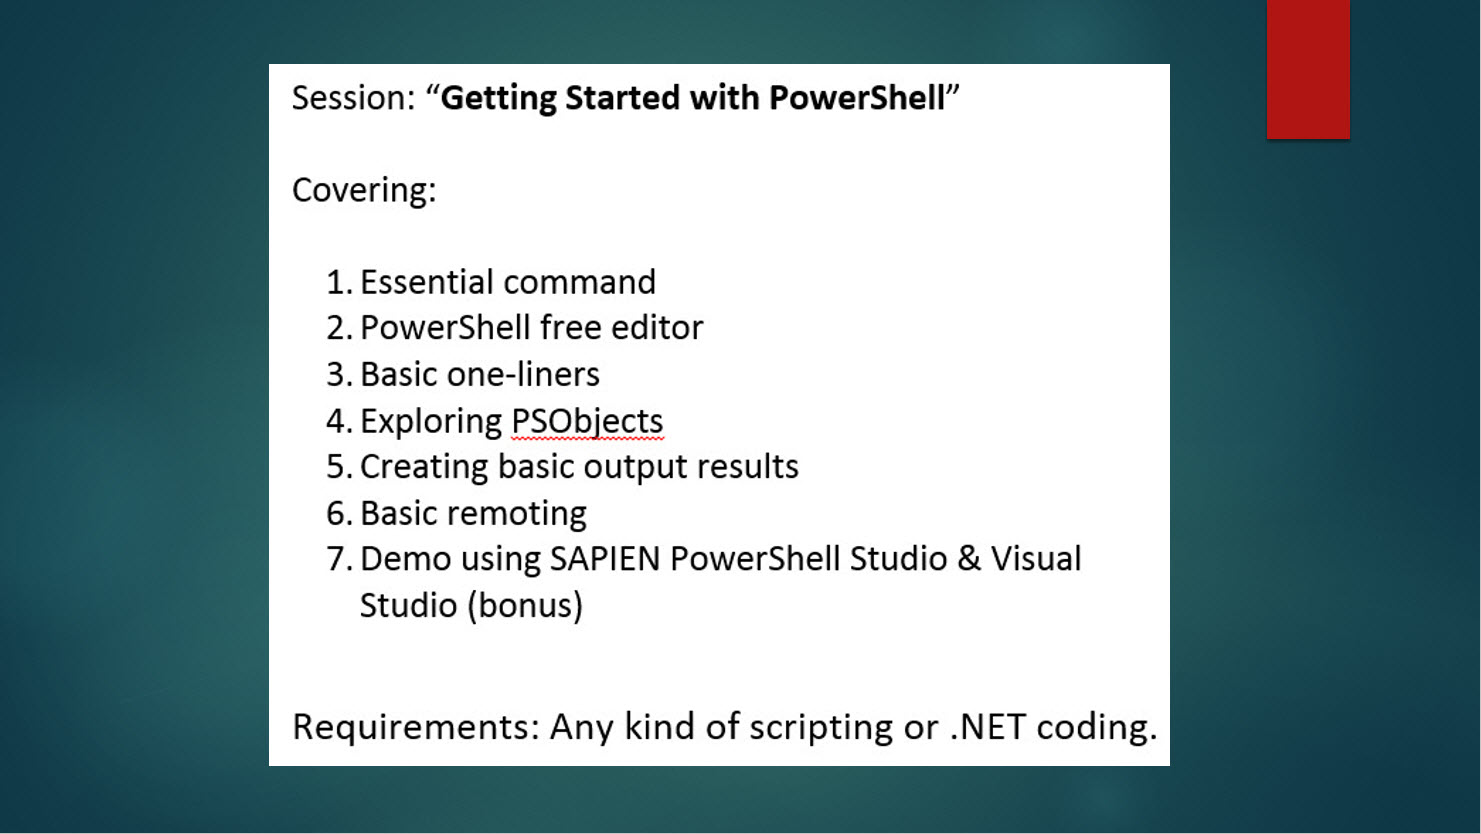 GettingStartedPowerShell_02_9-28-2015 jpg